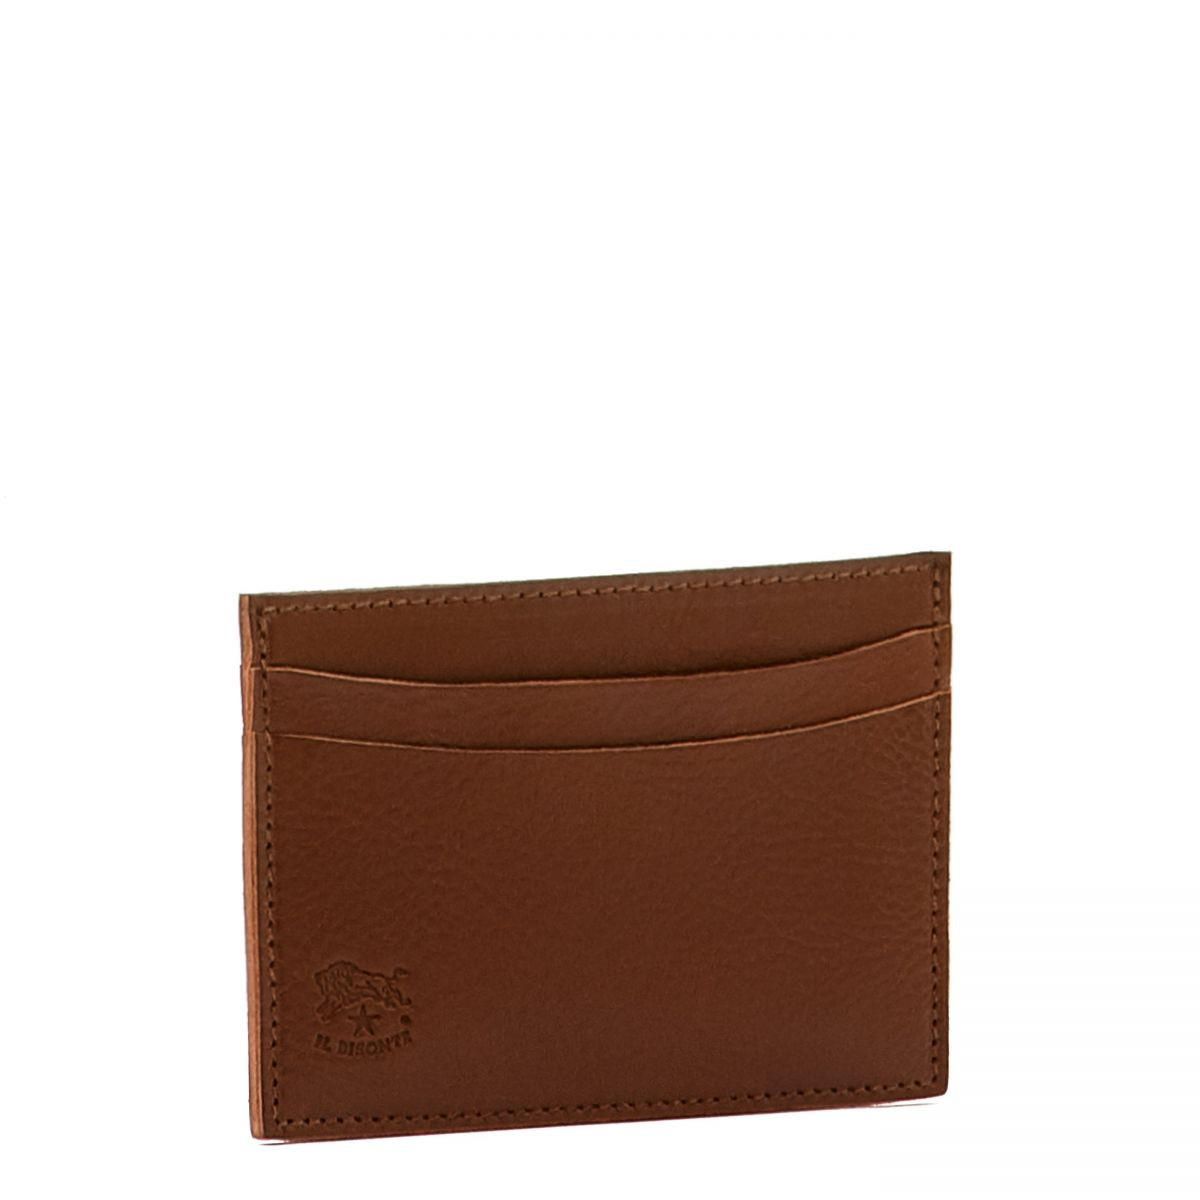 Card Case  in Cowhide Double Leather SCC019 color Brown | Details